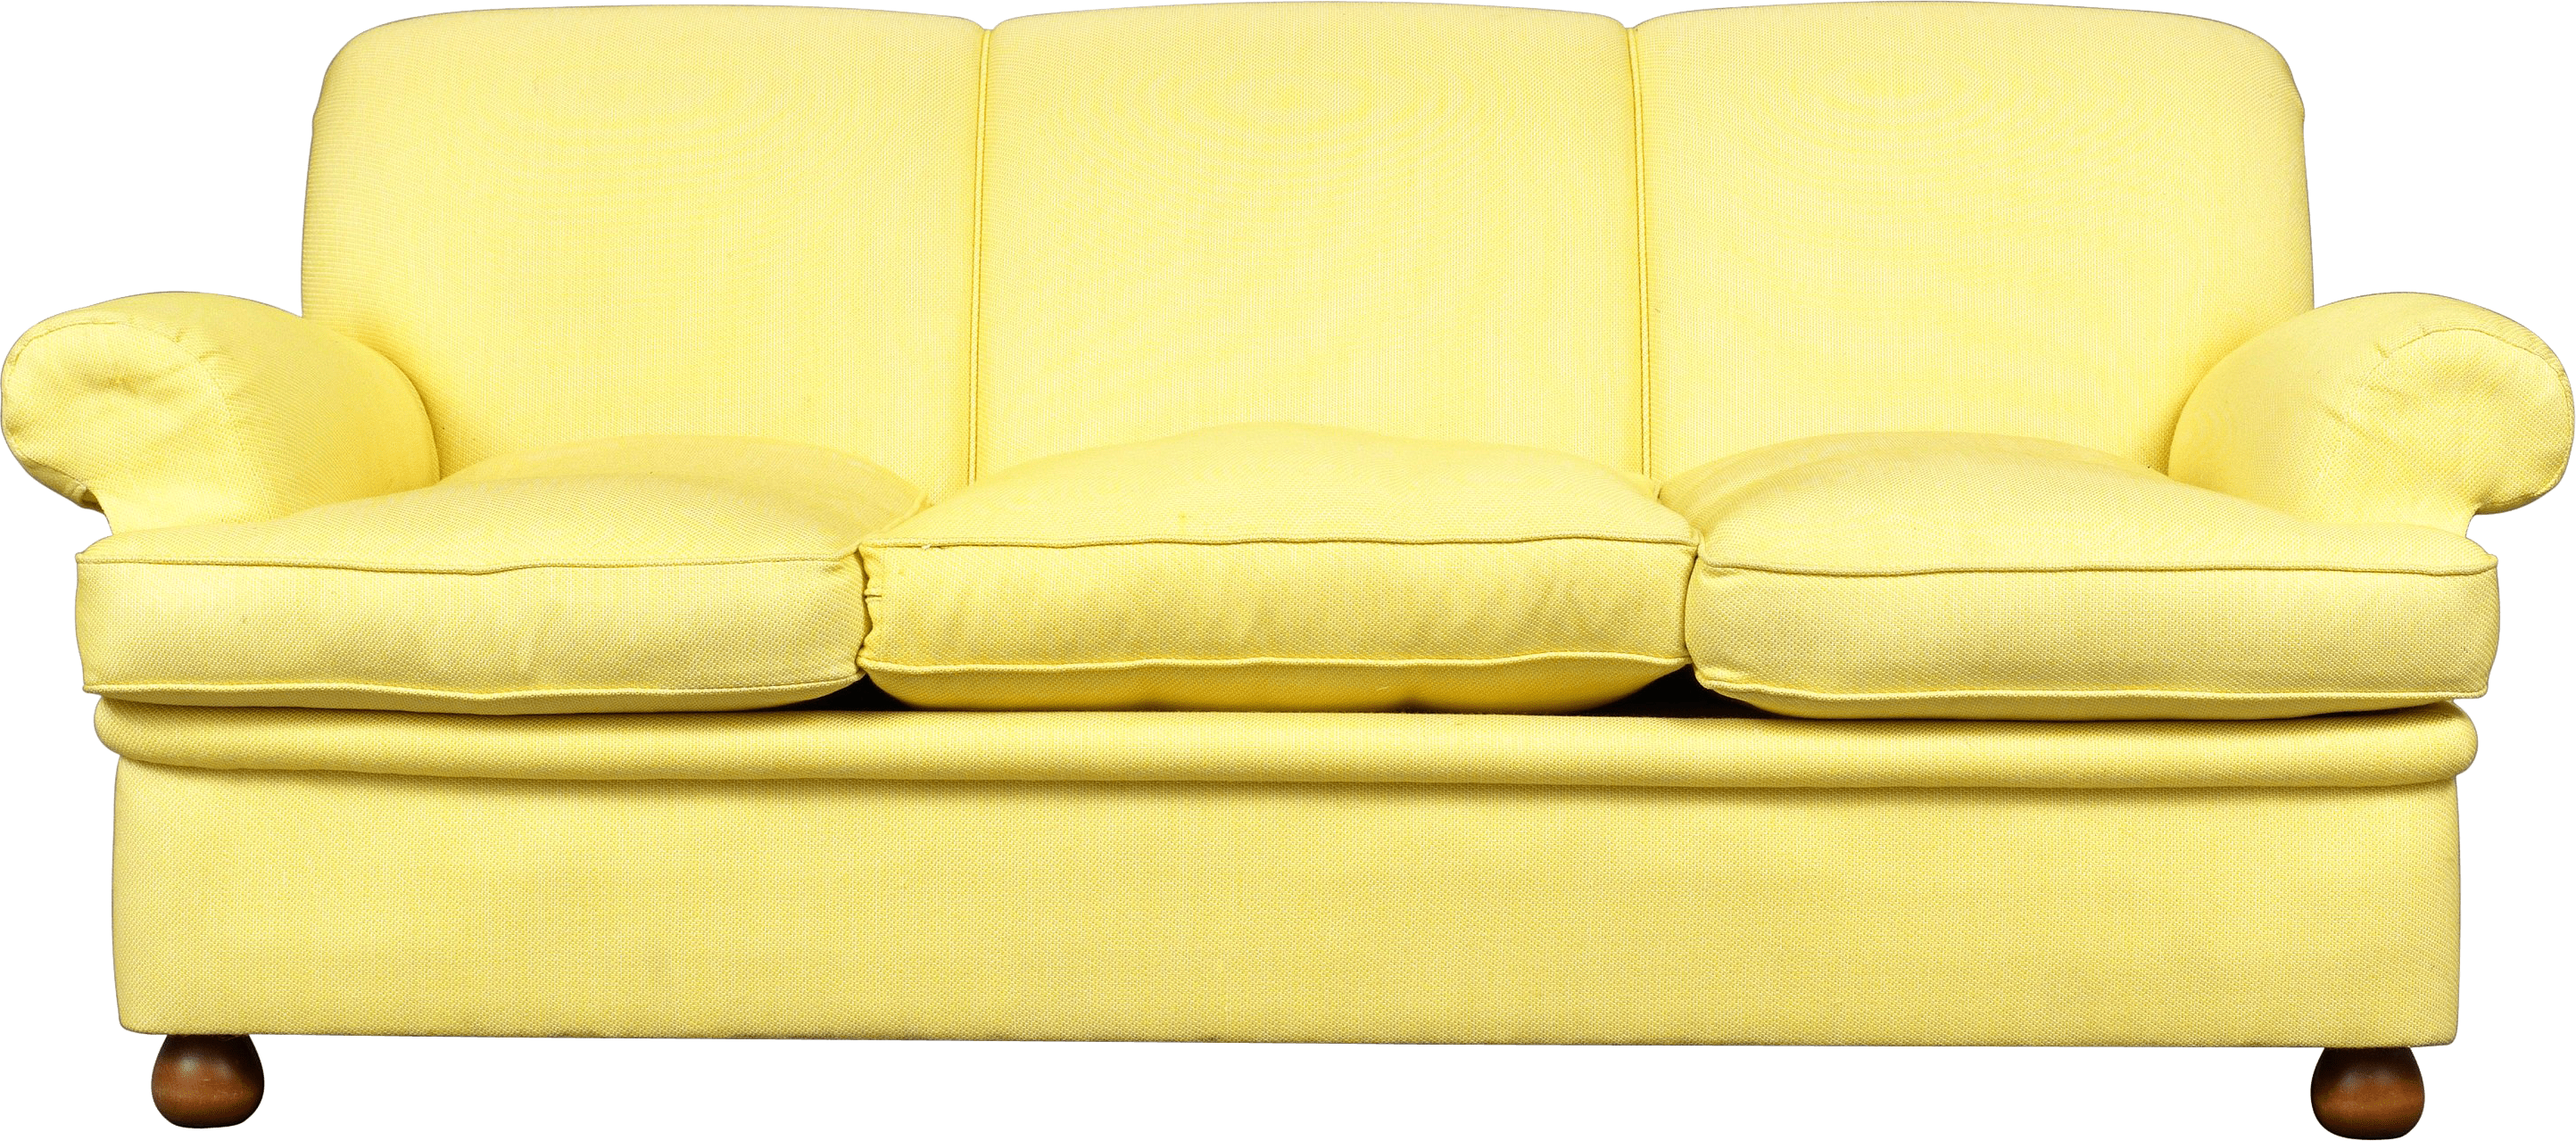 sofa set png images best reclining image